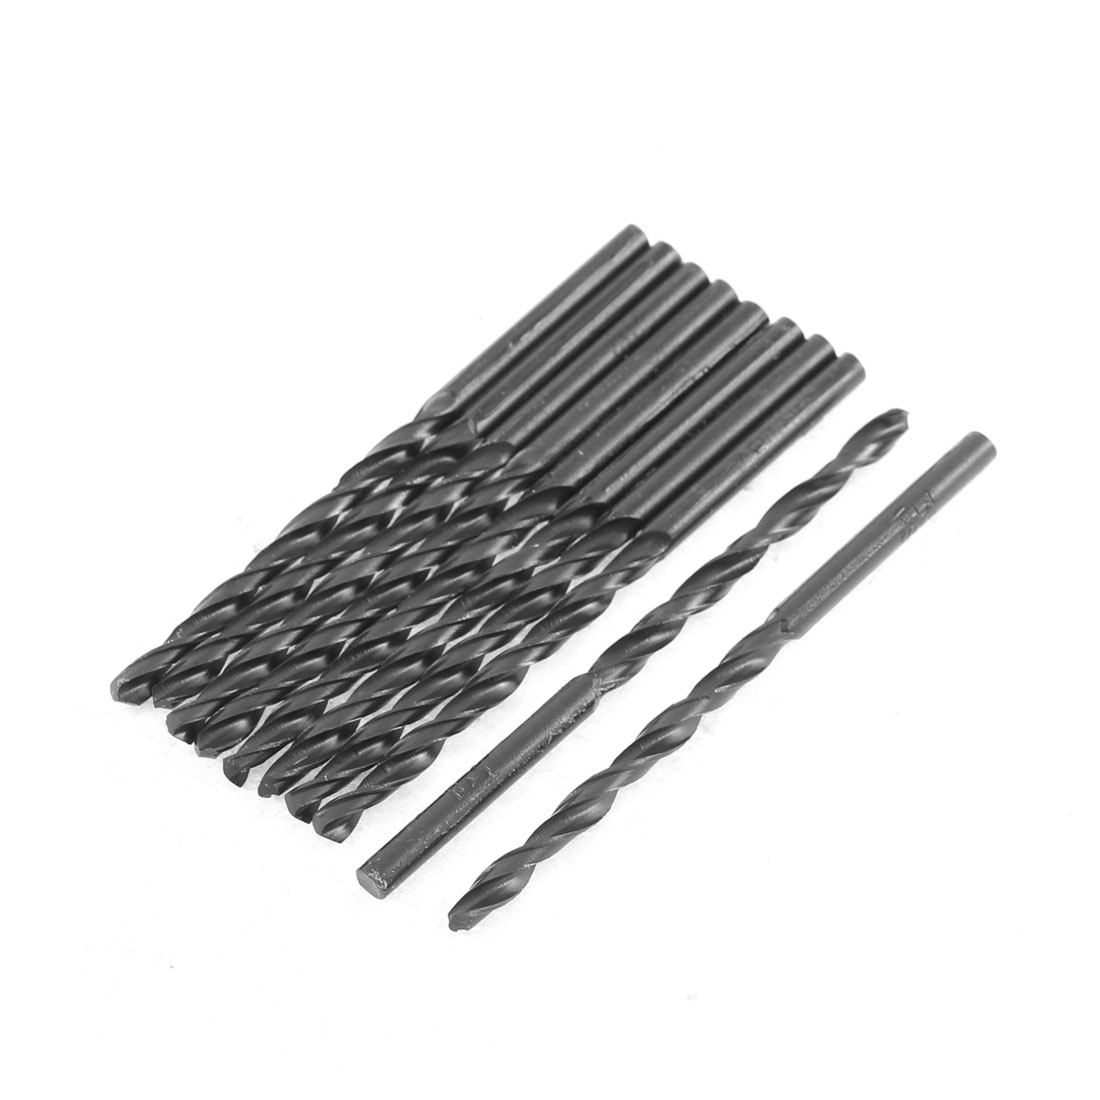 3.5mm Cutting Dia 70mm Length HSS Straight Shank Twist Drill Bit Black 10pcs